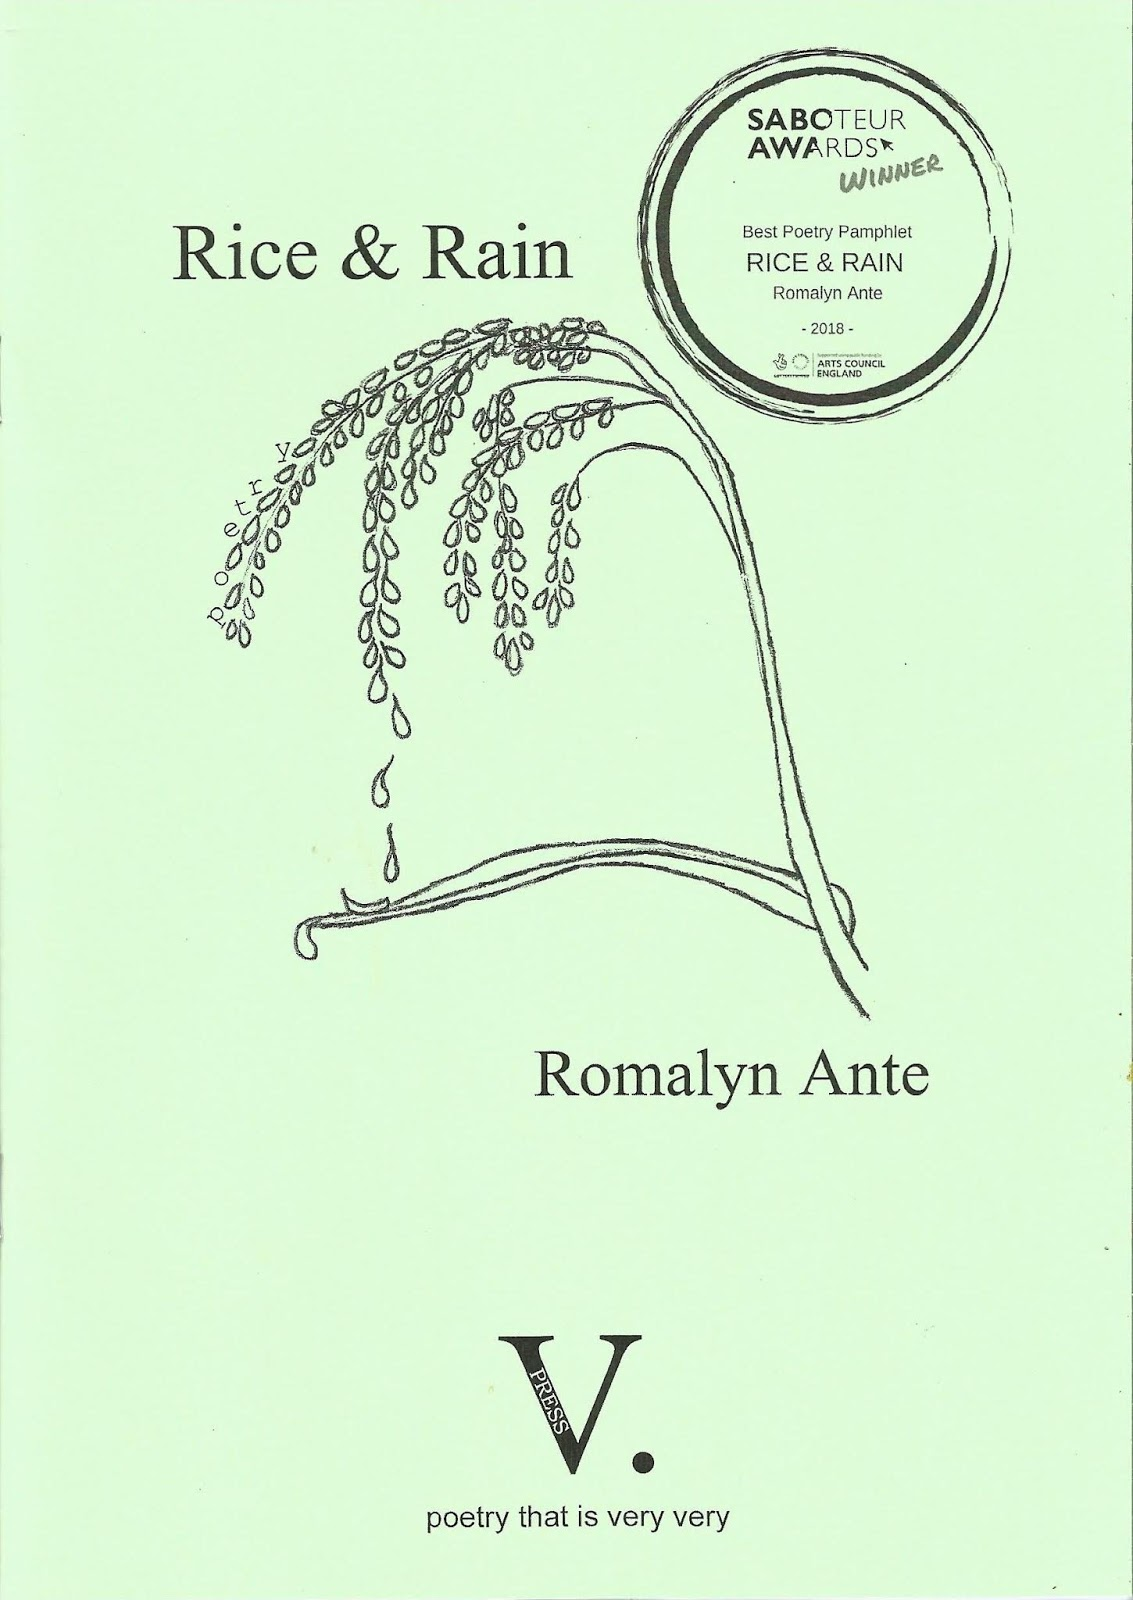 a1469758e41e1 The poetry in Romalyn Ante's Rice & Rain is very rich and very distinct.